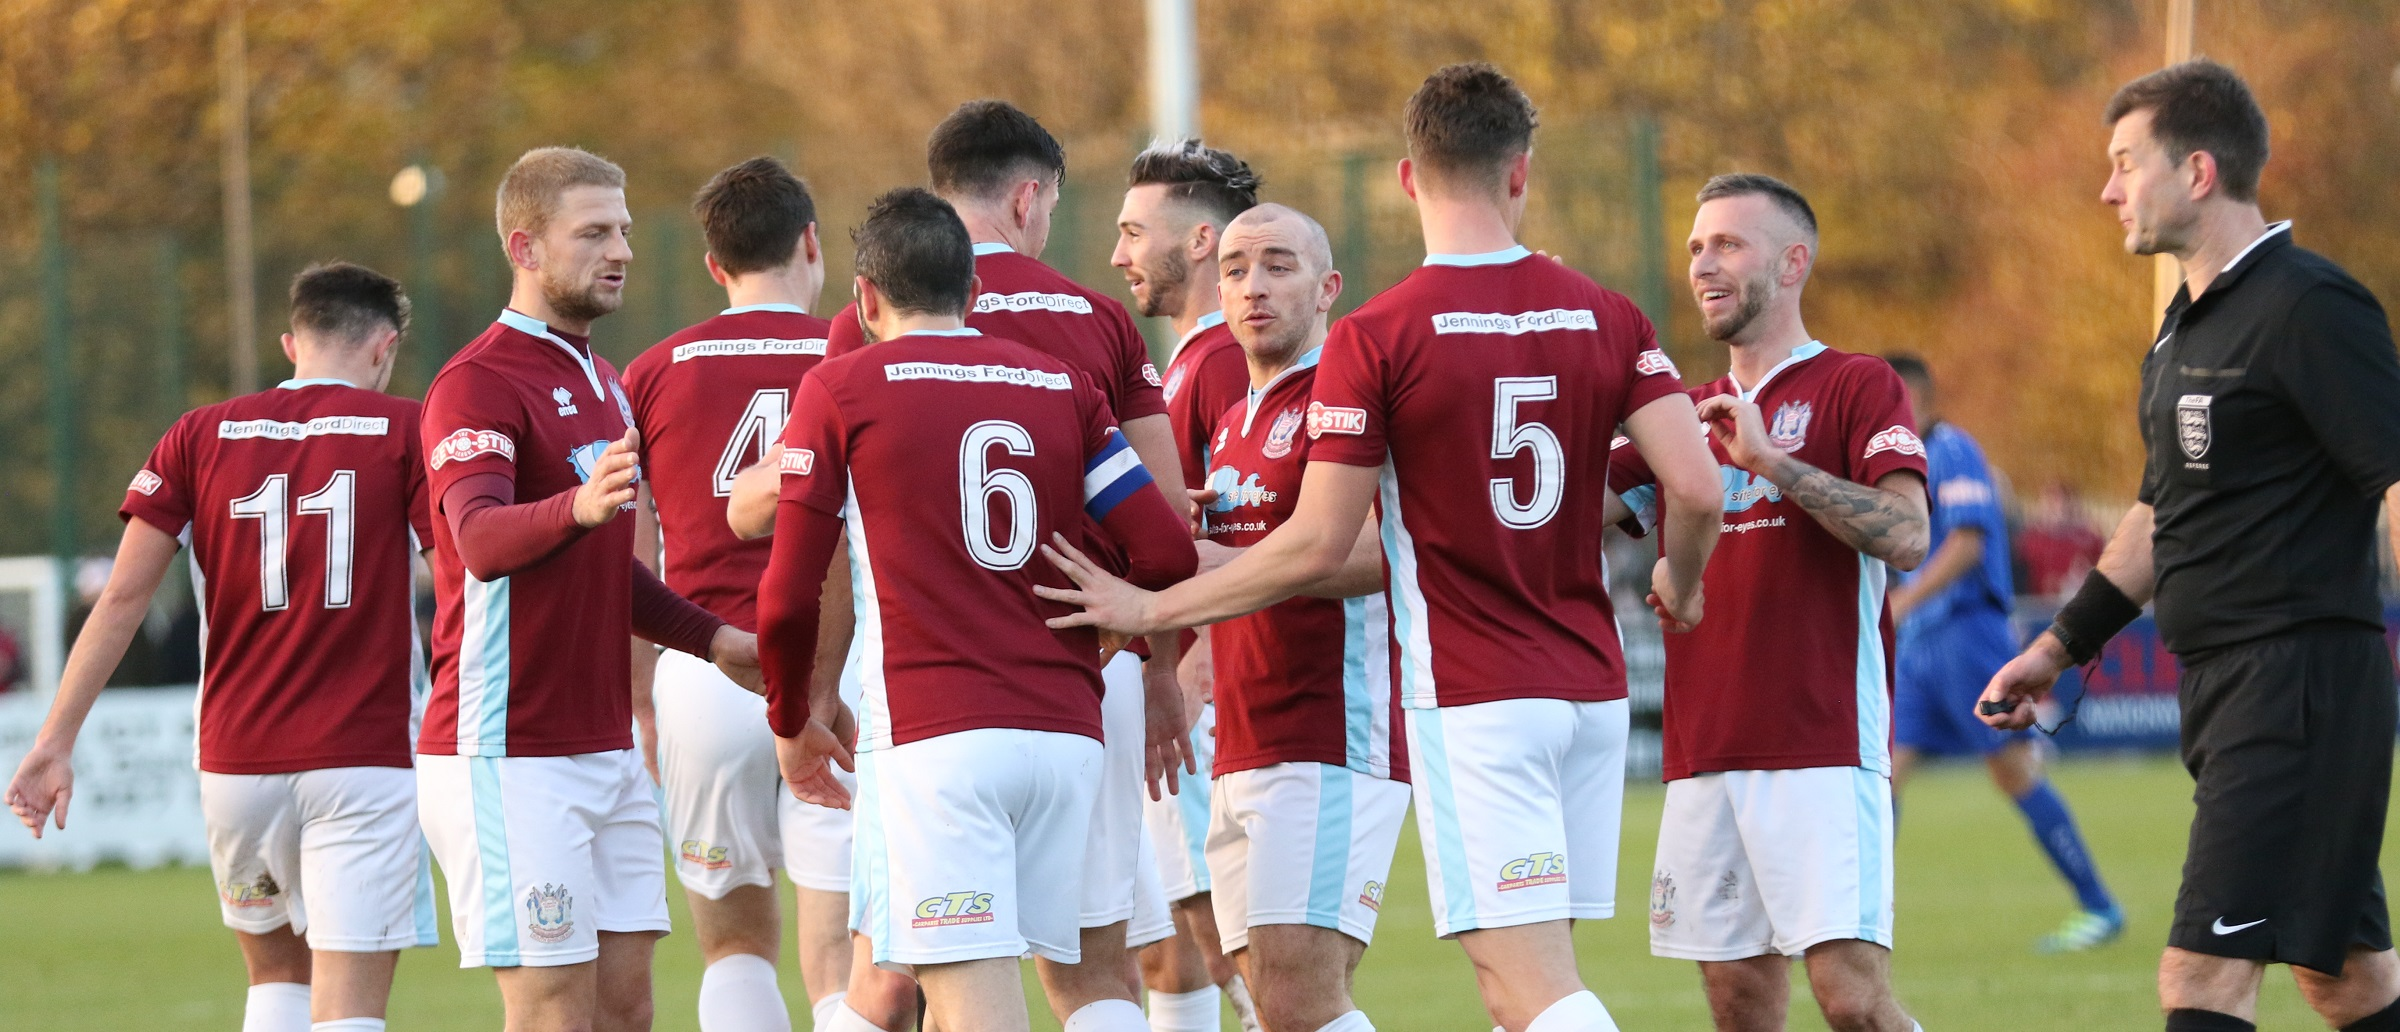 Match Preview: South Shields vs Ramsbottom United, Evo-Stik North